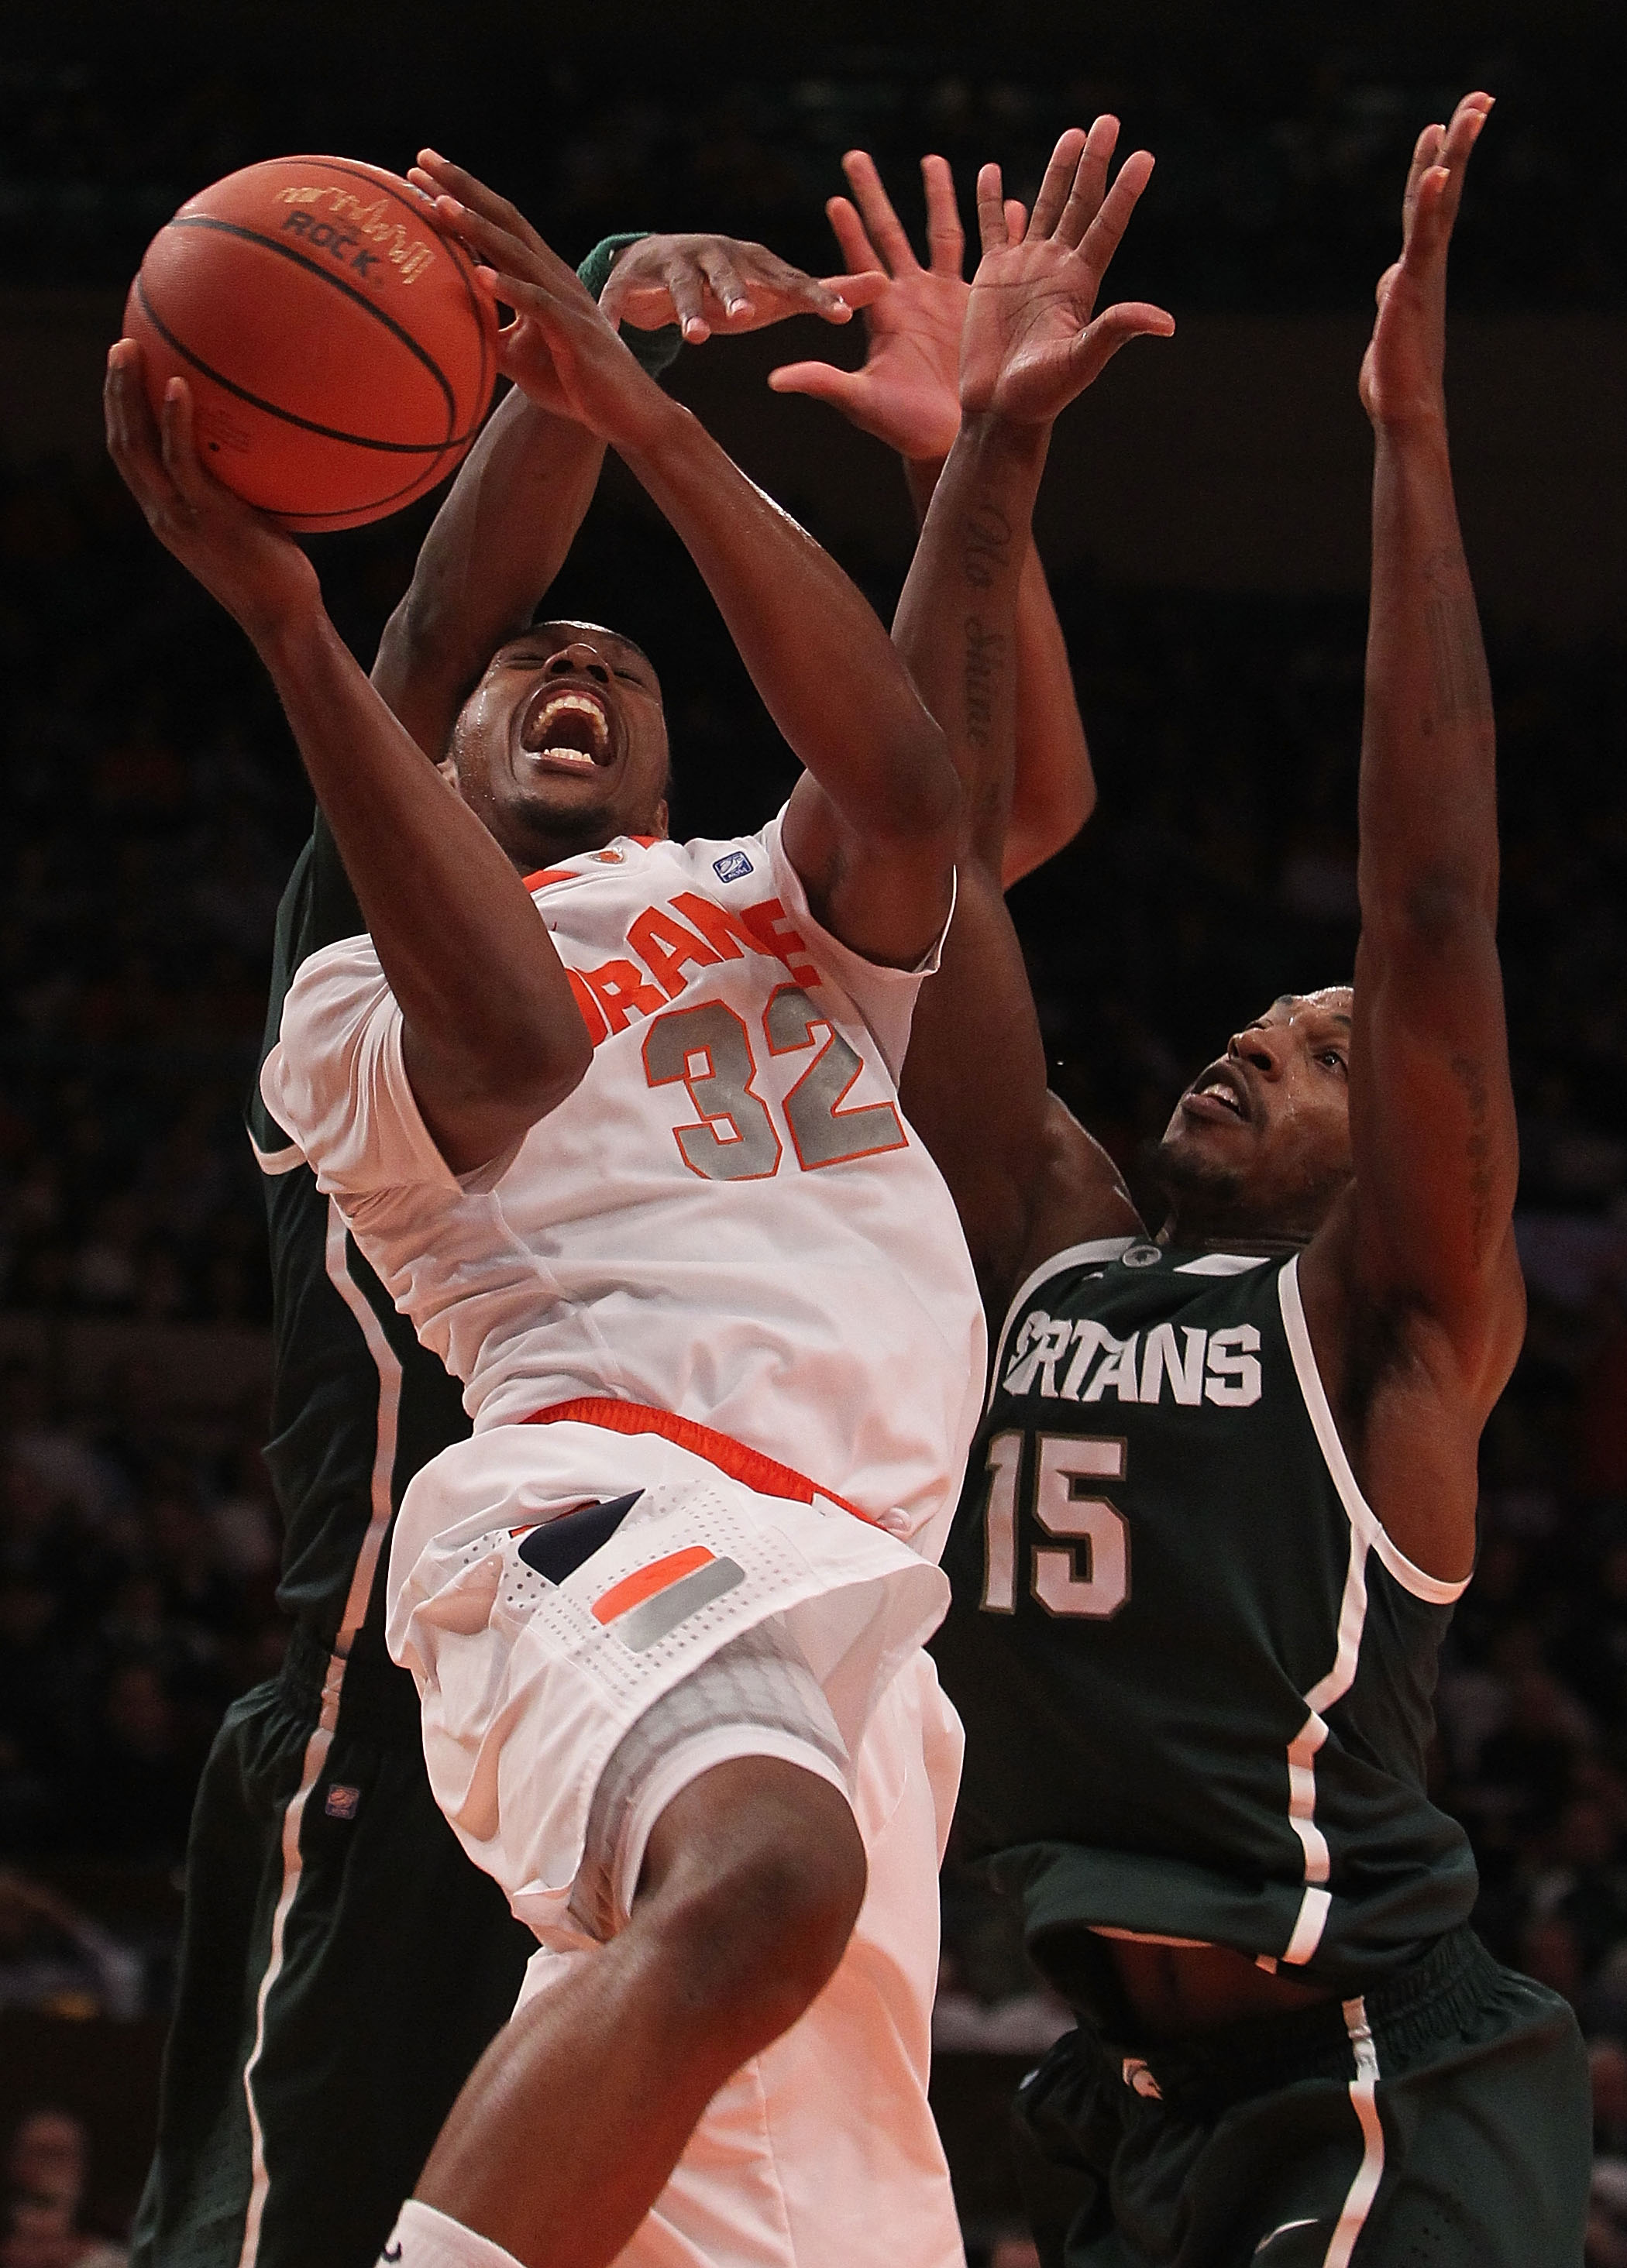 NEW YORK, NY - DECEMBER 07:  Kris Joseph #32 of Syracuse Orange is fouled against the Michigan State Spartans during their game at the Jimmy V Classic at Madison Square Garden on December 7, 2010 in New York City.  (Photo by Nick Laham/Getty Images)